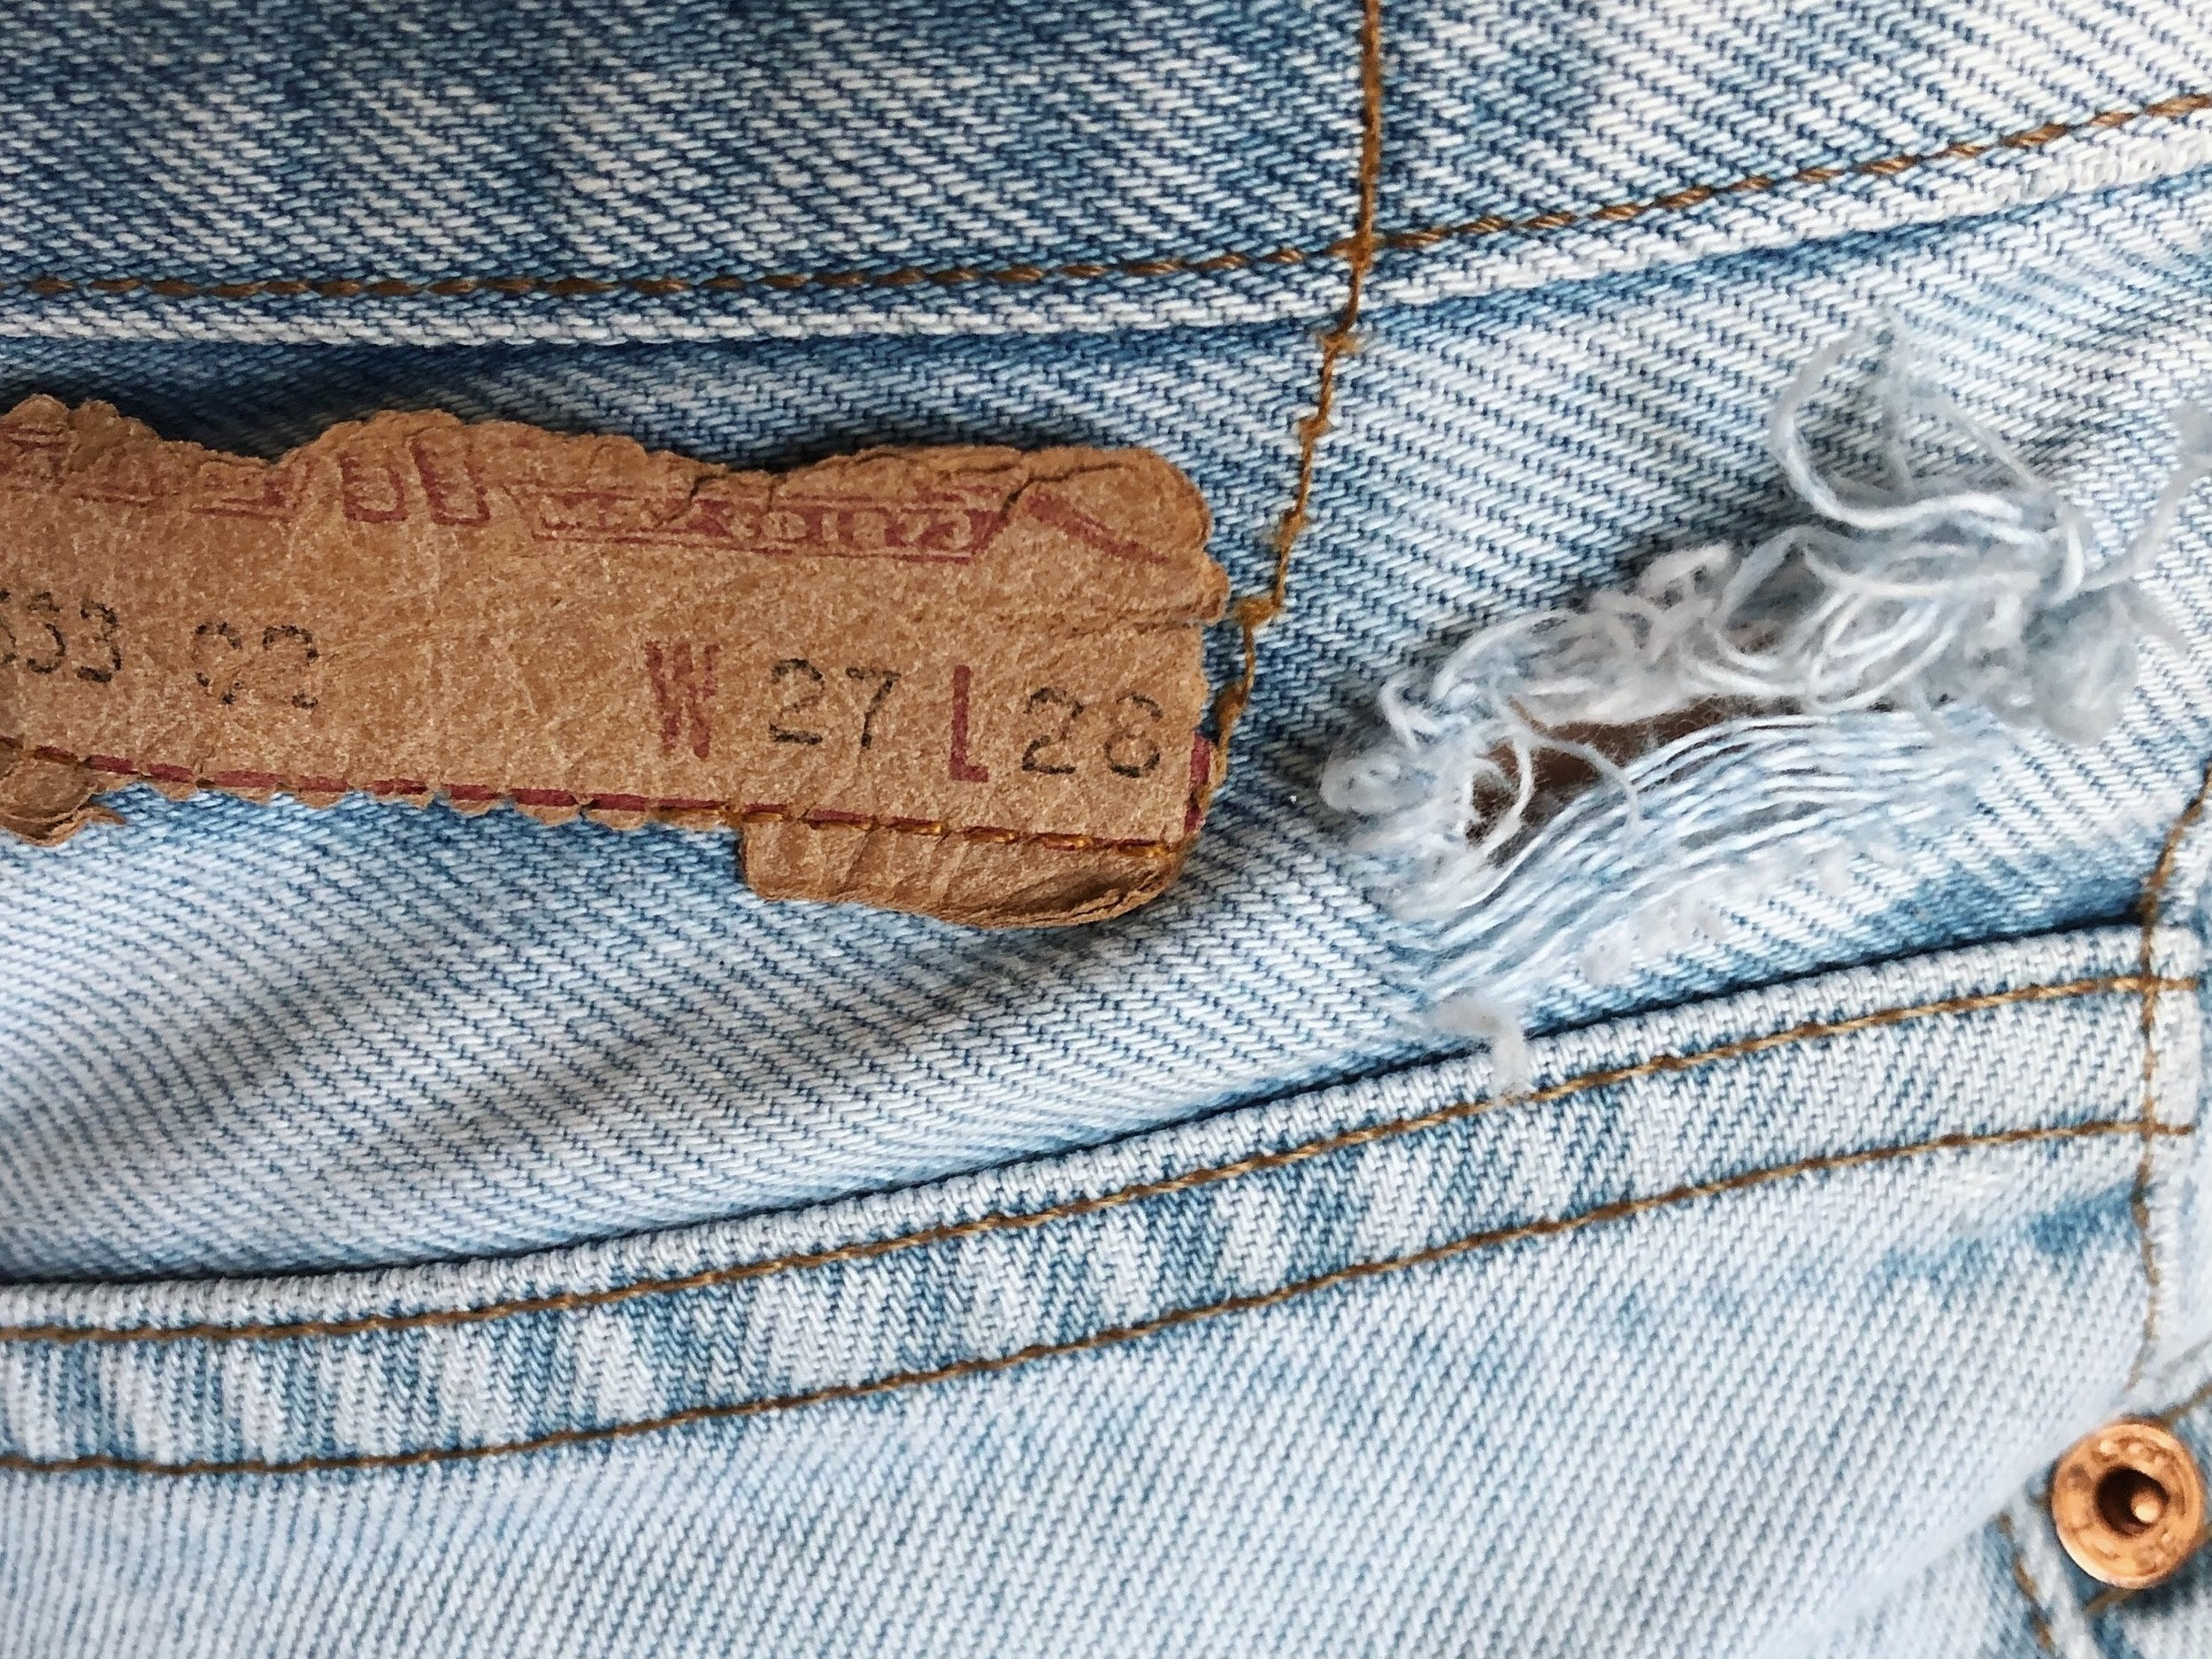 These jeans can be mended! Come learn how!